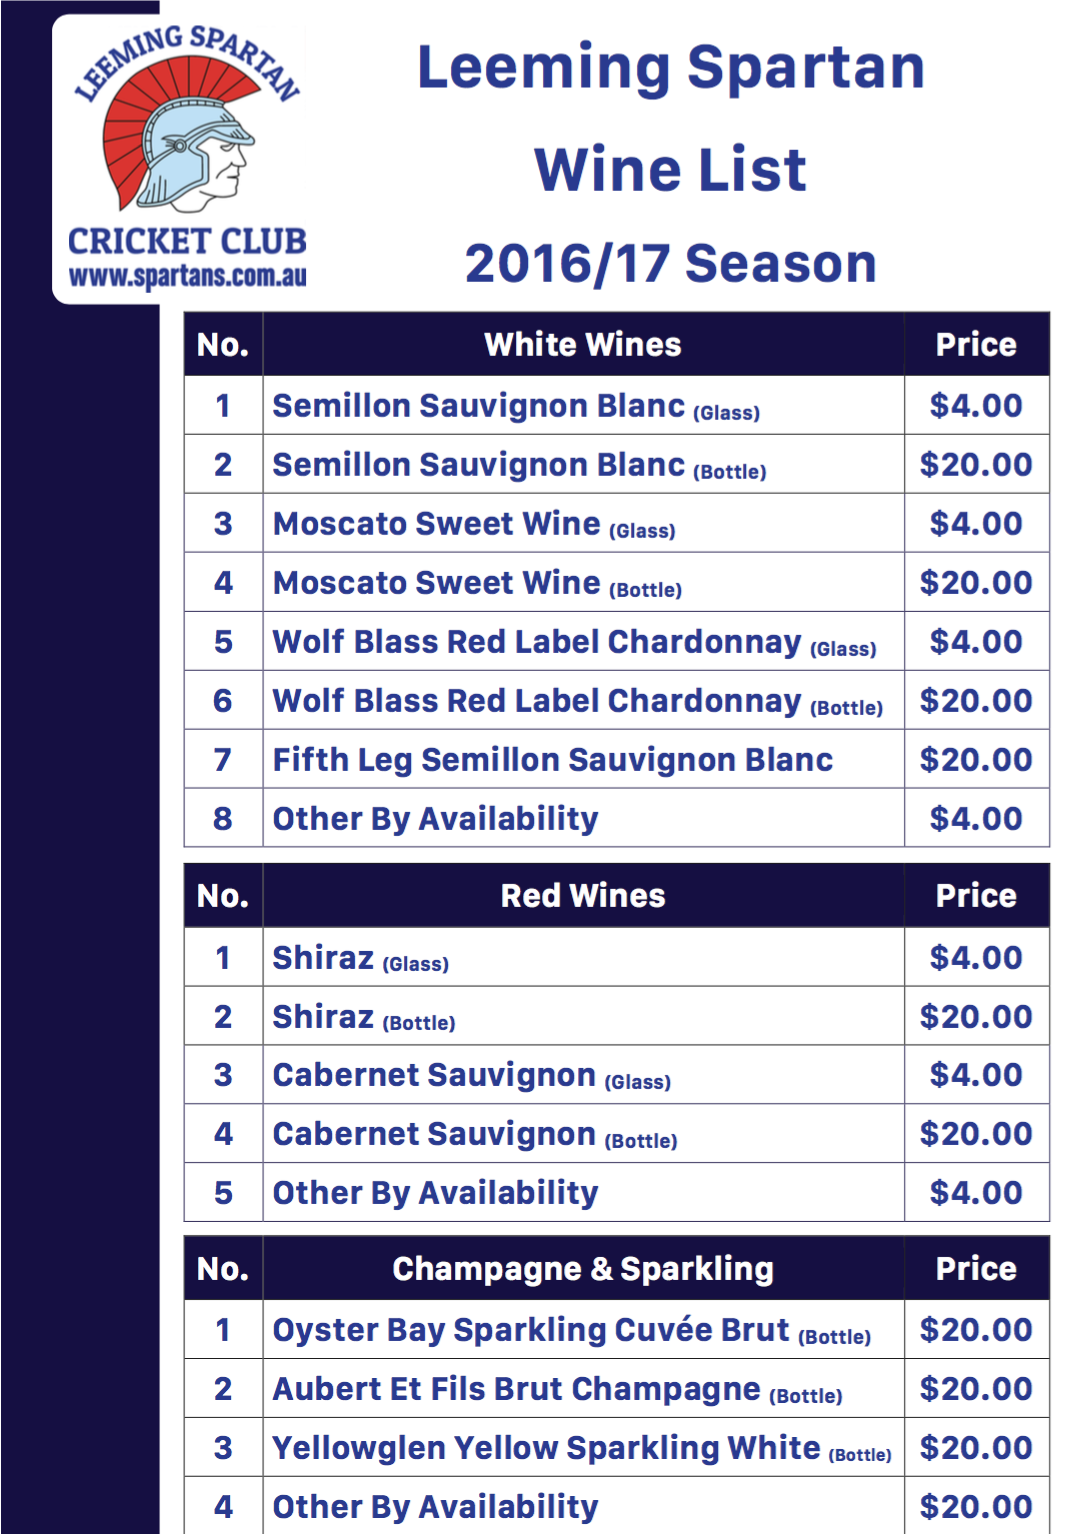 Spartan Wine List 2016/17